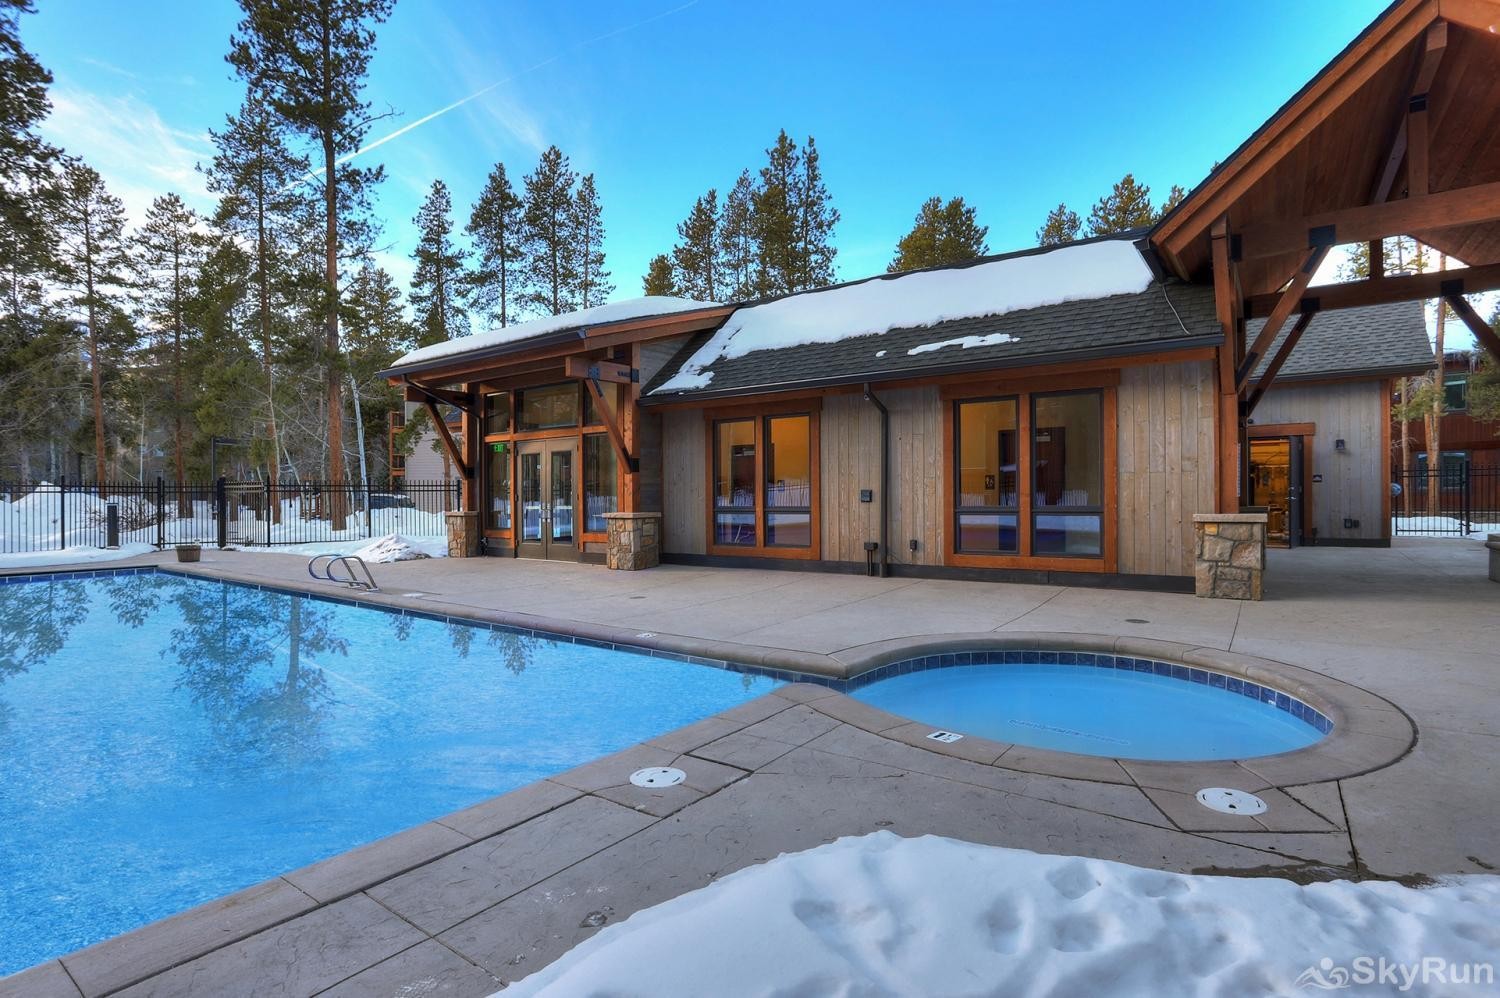 The Lift A102 Guests enjoy access to the Columbine Pool & Hot Tub Complex